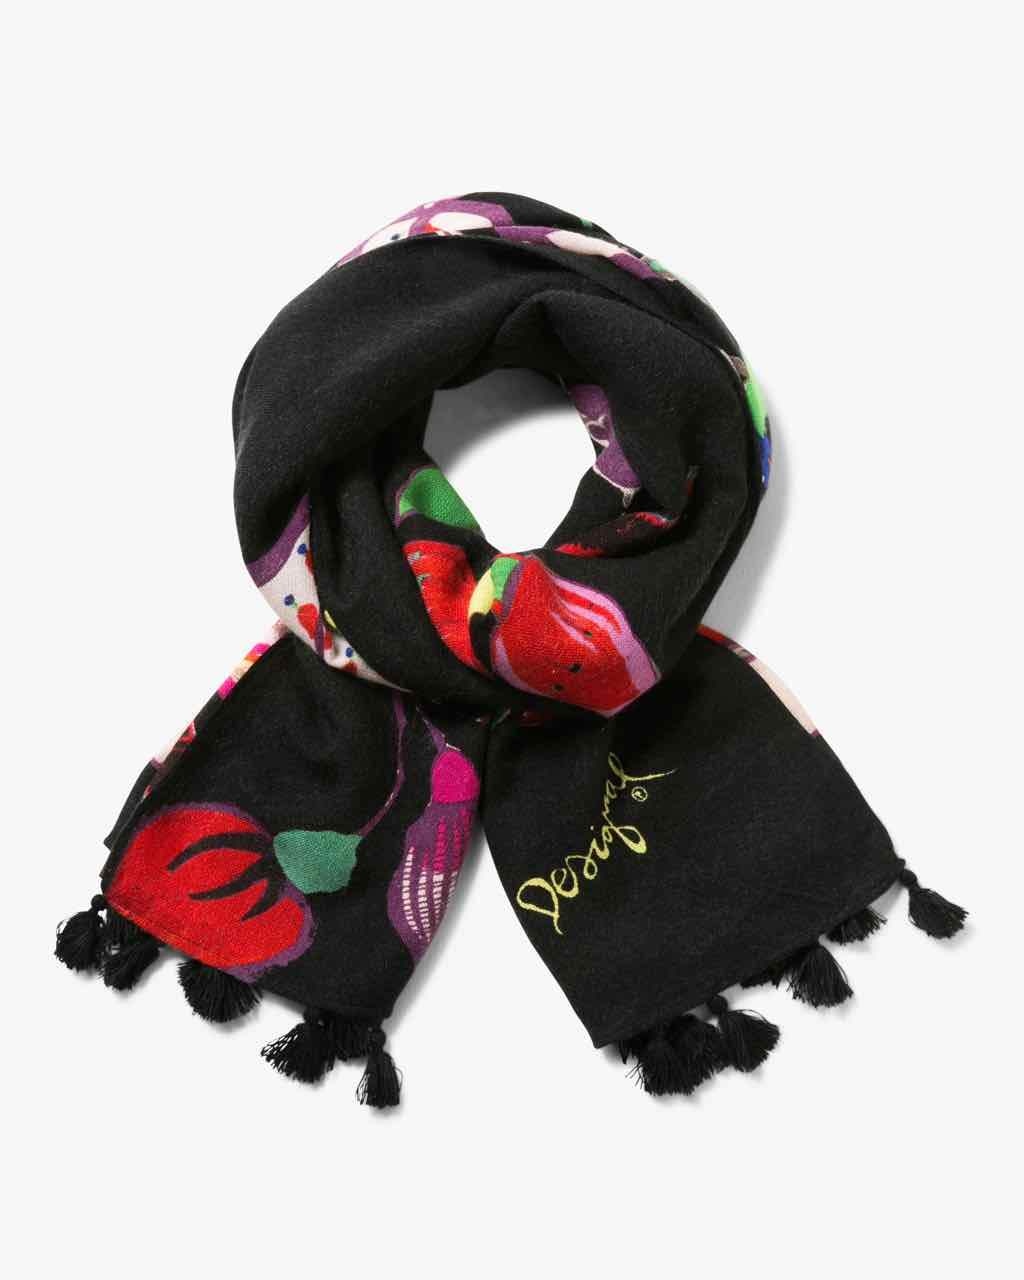 17WAWFD7_5096 Desigual Scarf Rectangle Carson Buy Online